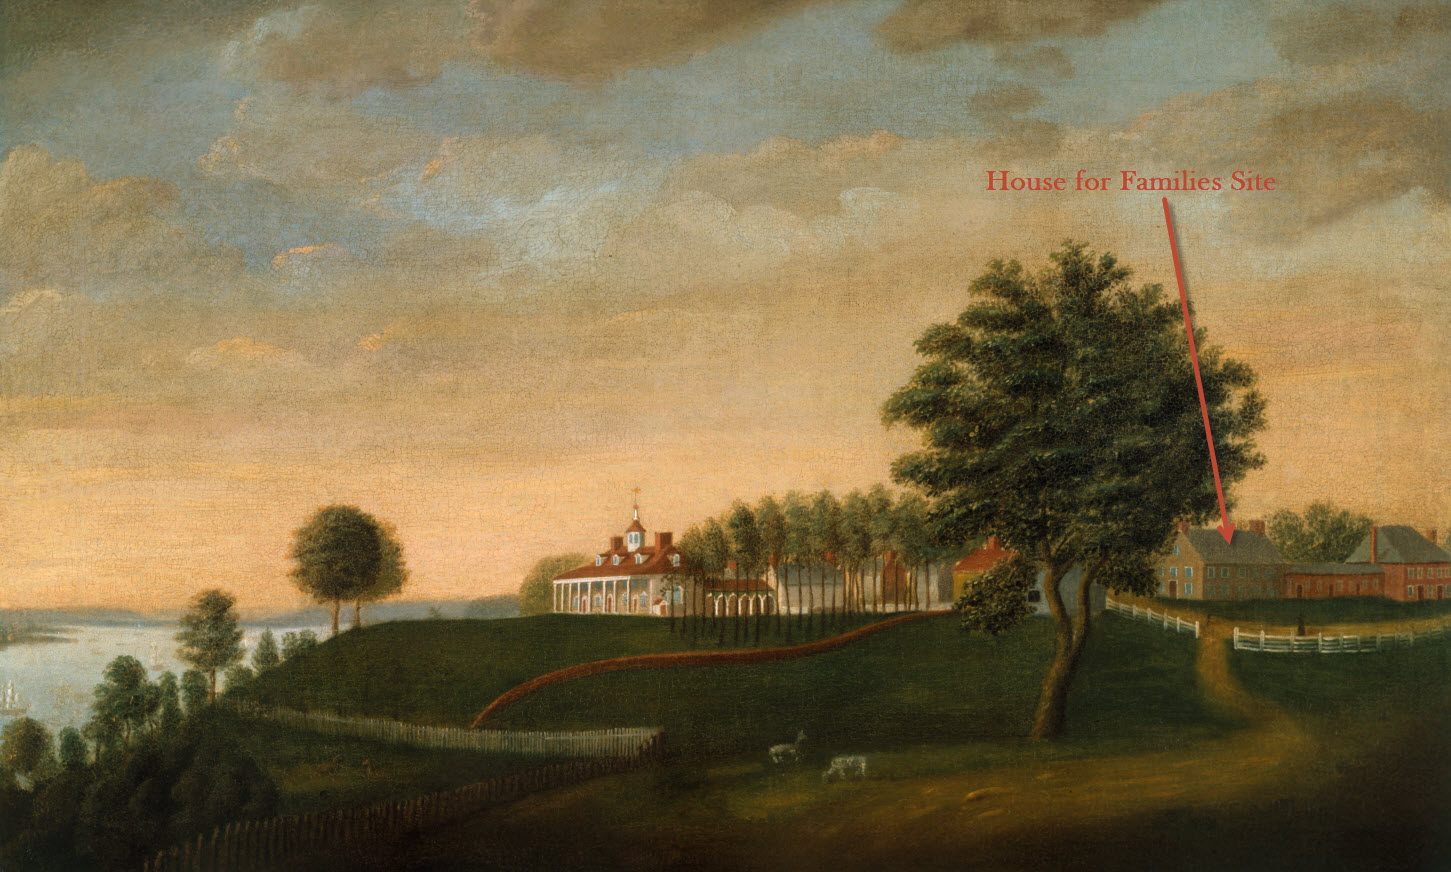 The House for Families can be seen in this Edward Savage painting of the Estate.